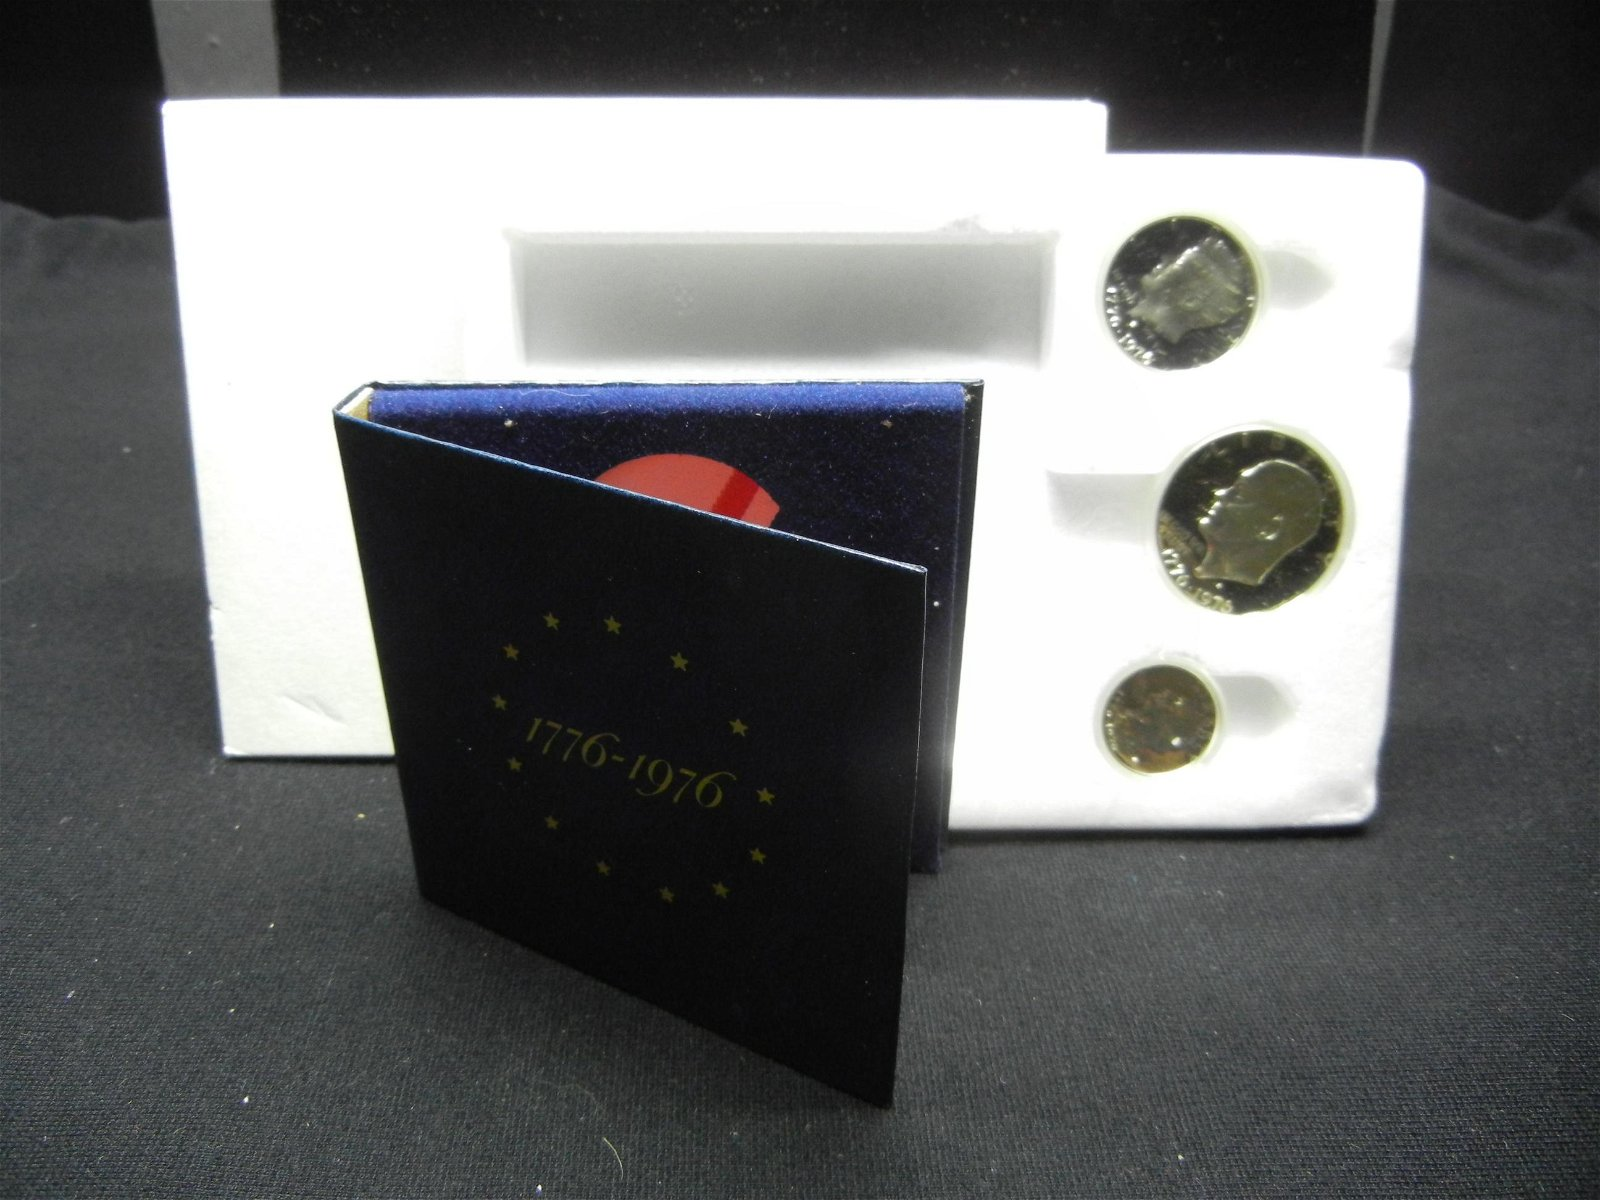 1976 3 Coin 40% Silver Proof Set In Original Packaging